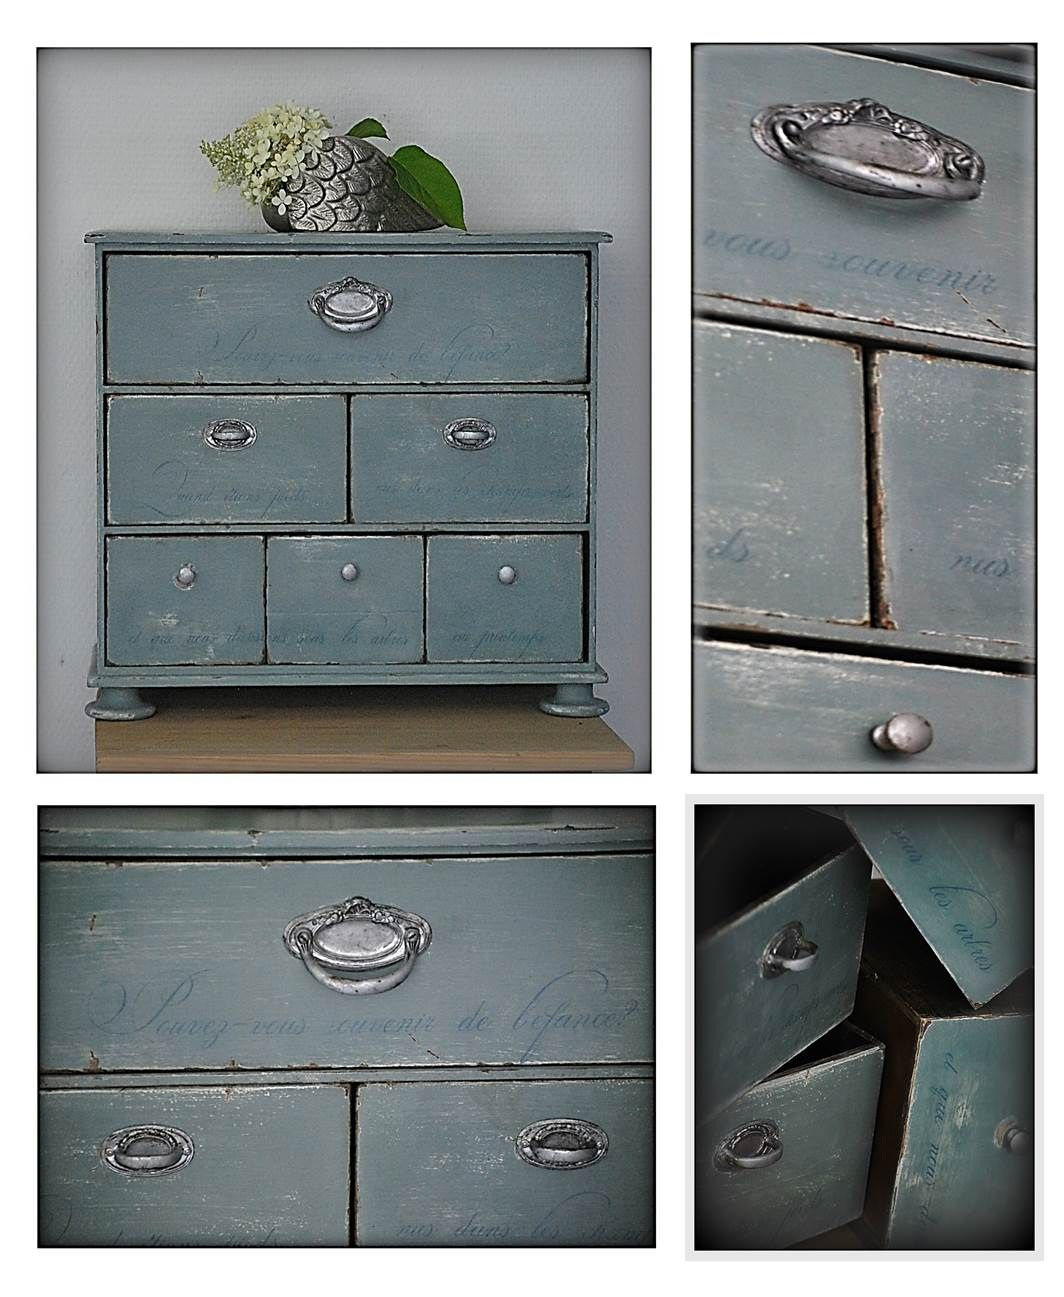 ikea hack moppe minikommode annie sloan chalk paint edeltr del pinterest annie sloan. Black Bedroom Furniture Sets. Home Design Ideas